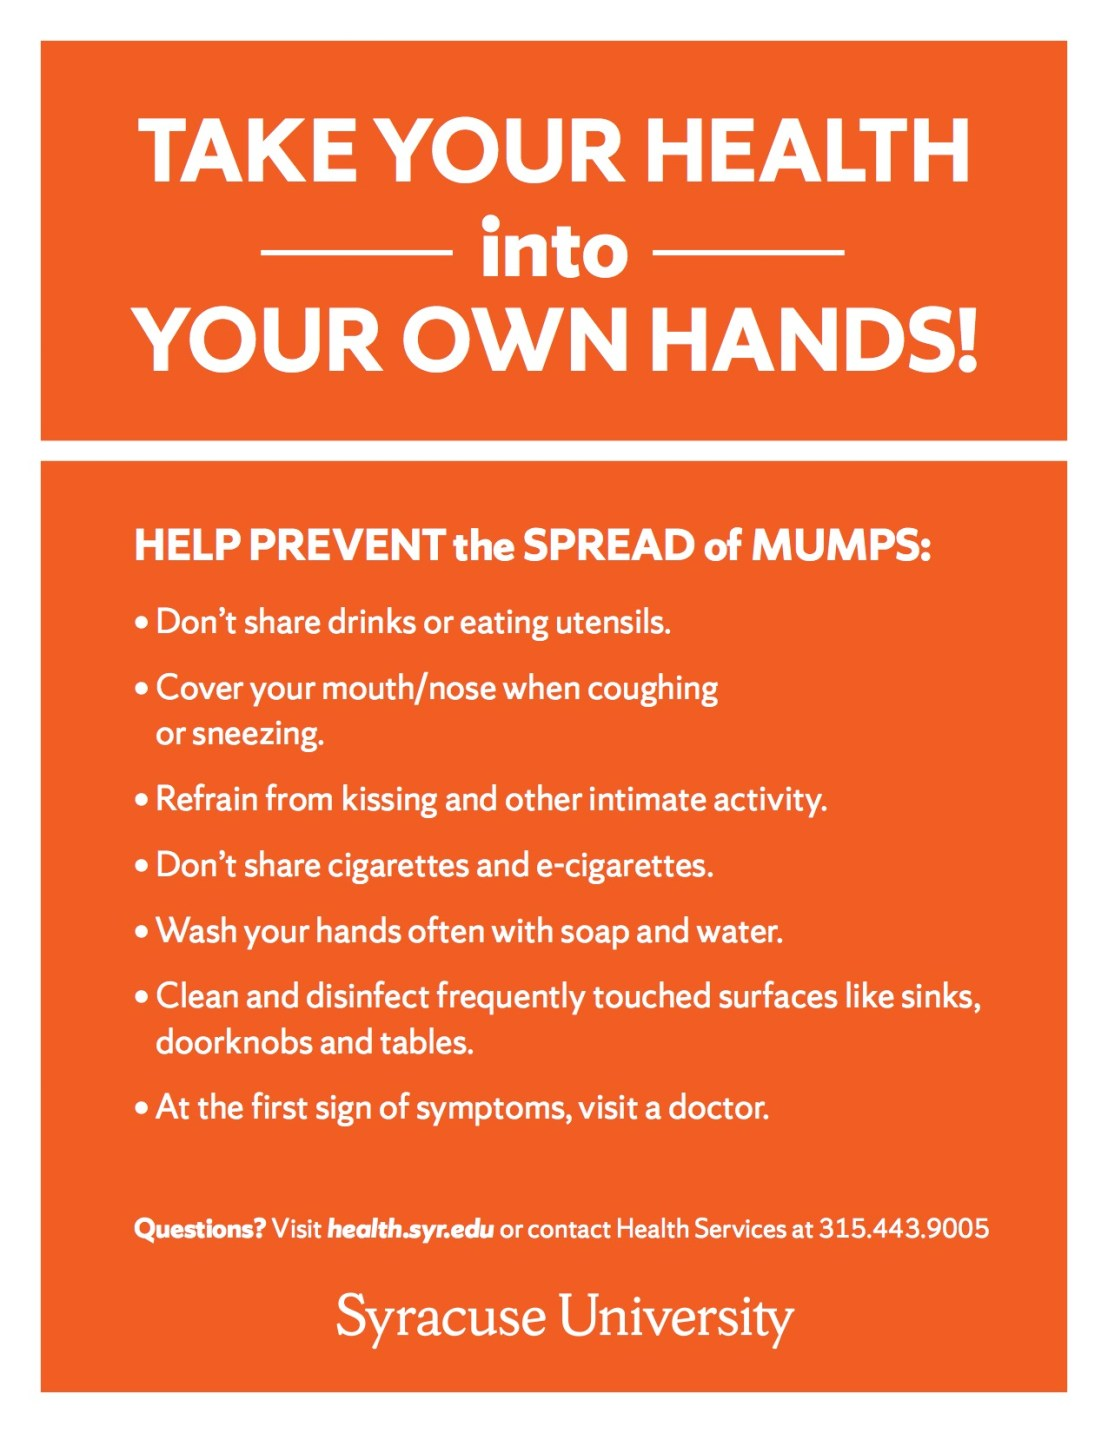 Unfortunately, this Syracuse University poster doesn't mention getting vaccinated...